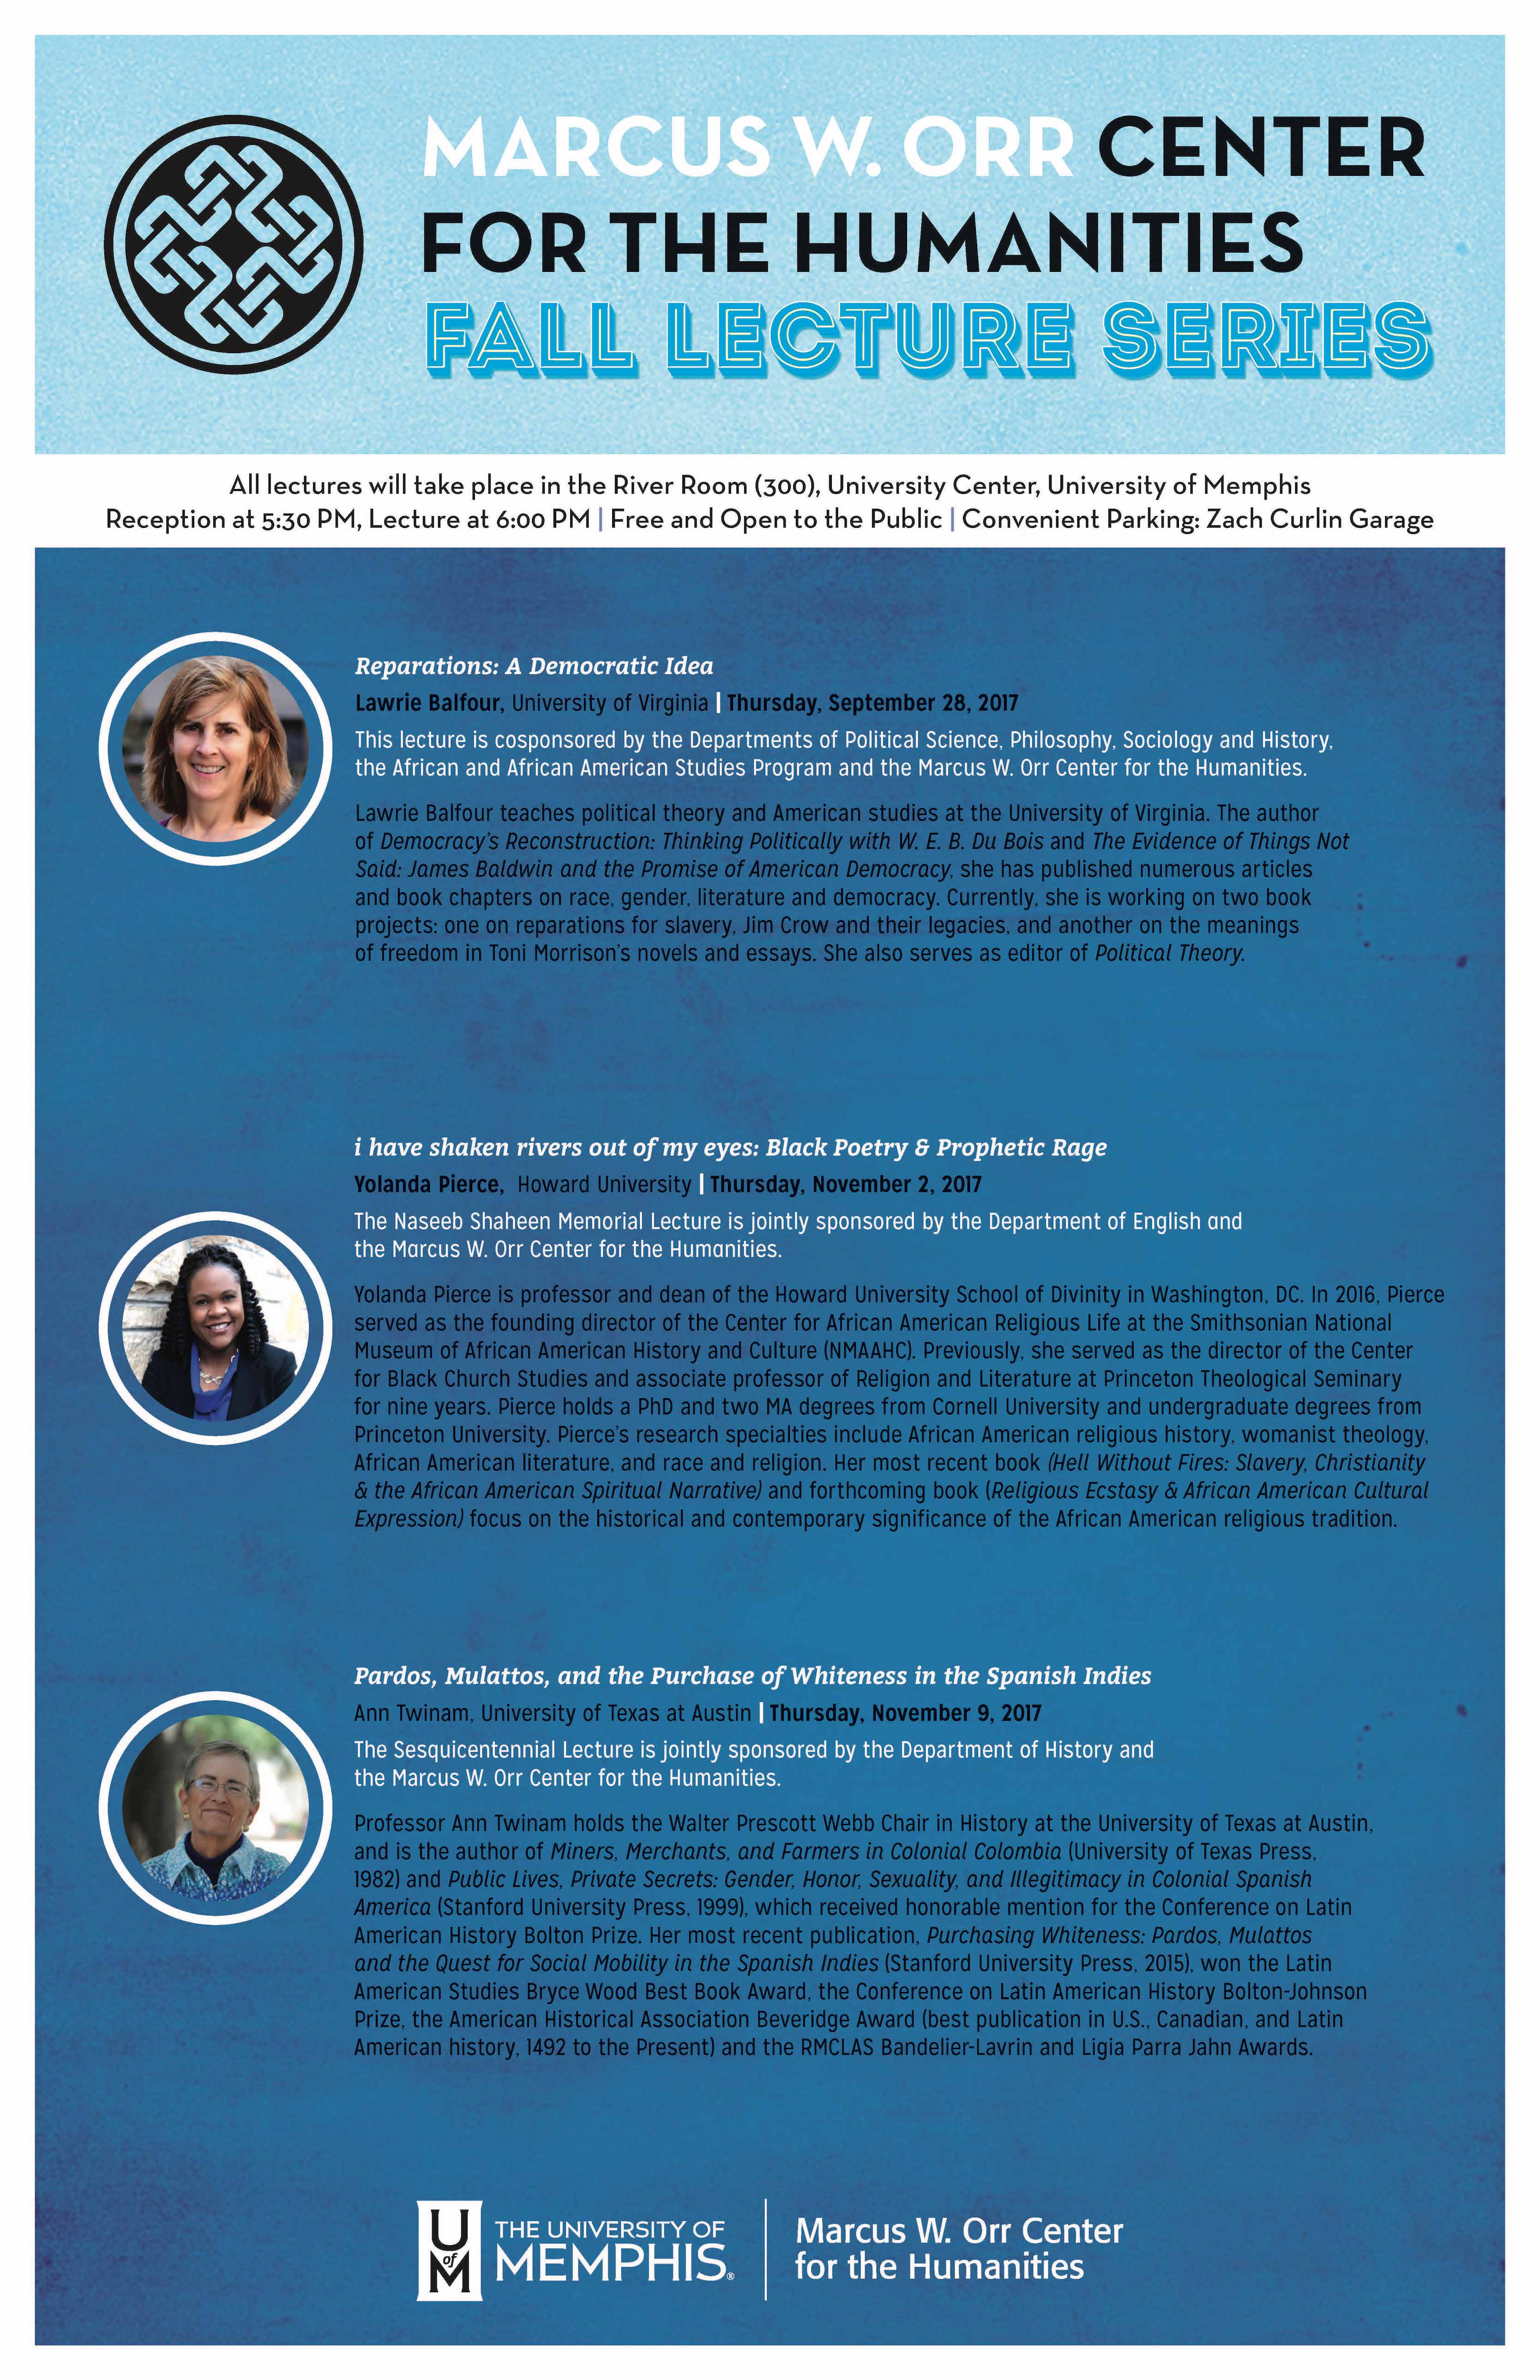 MOCH Fall 2017 Lecture Series